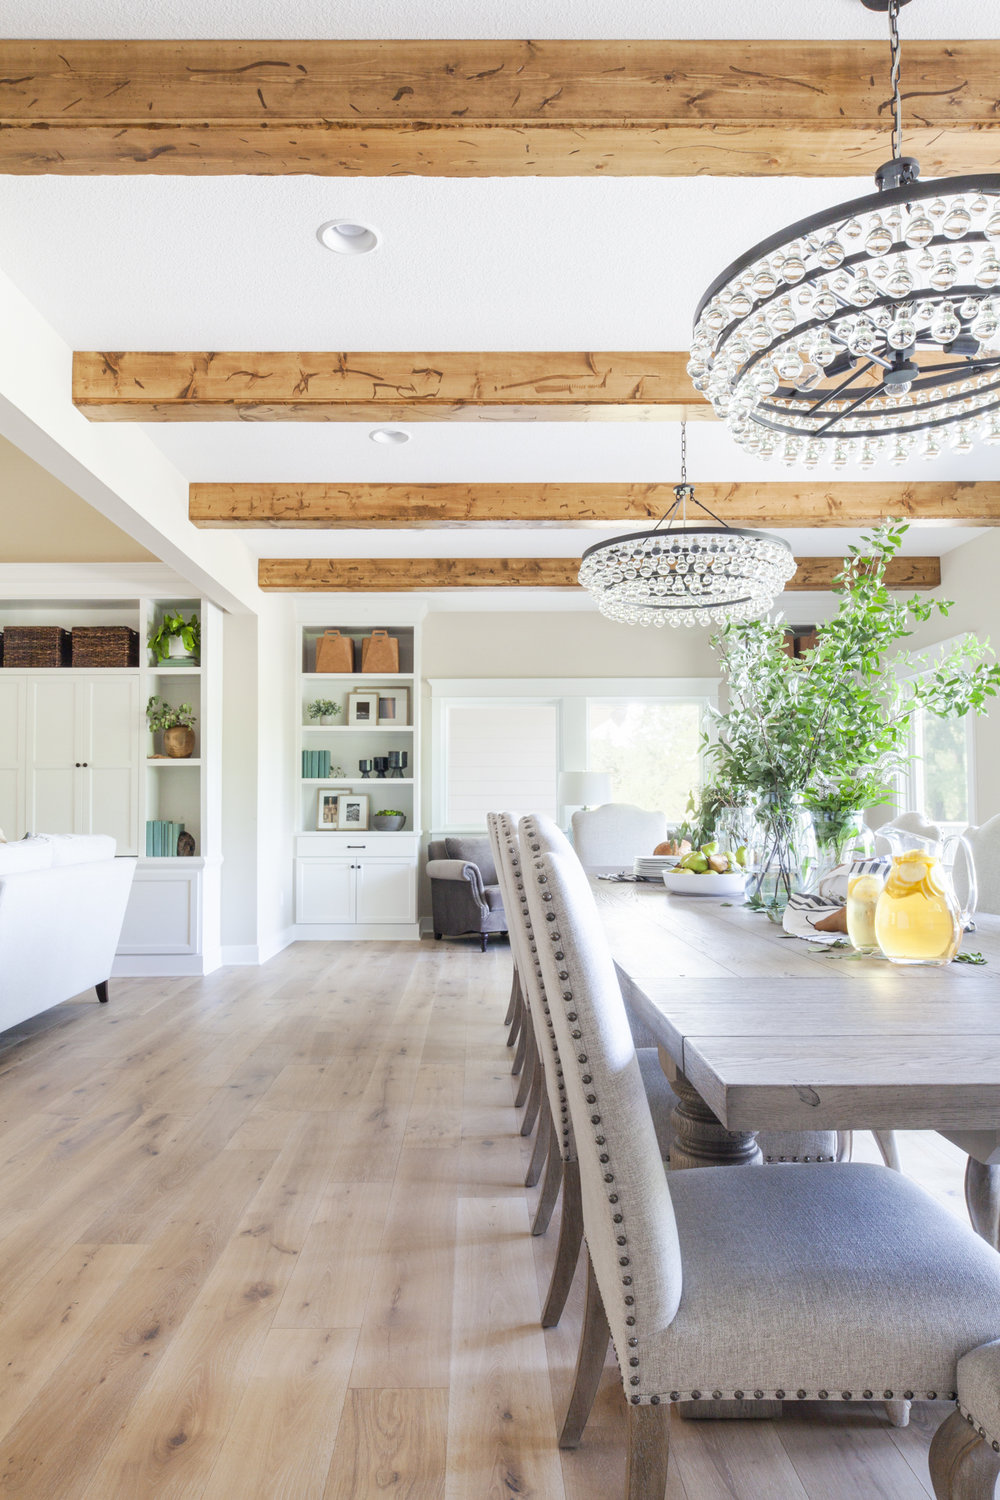 before-and-after-home-reveal-scout-and-nimble-lake-view-luxe-country-interior-design-46.jpg